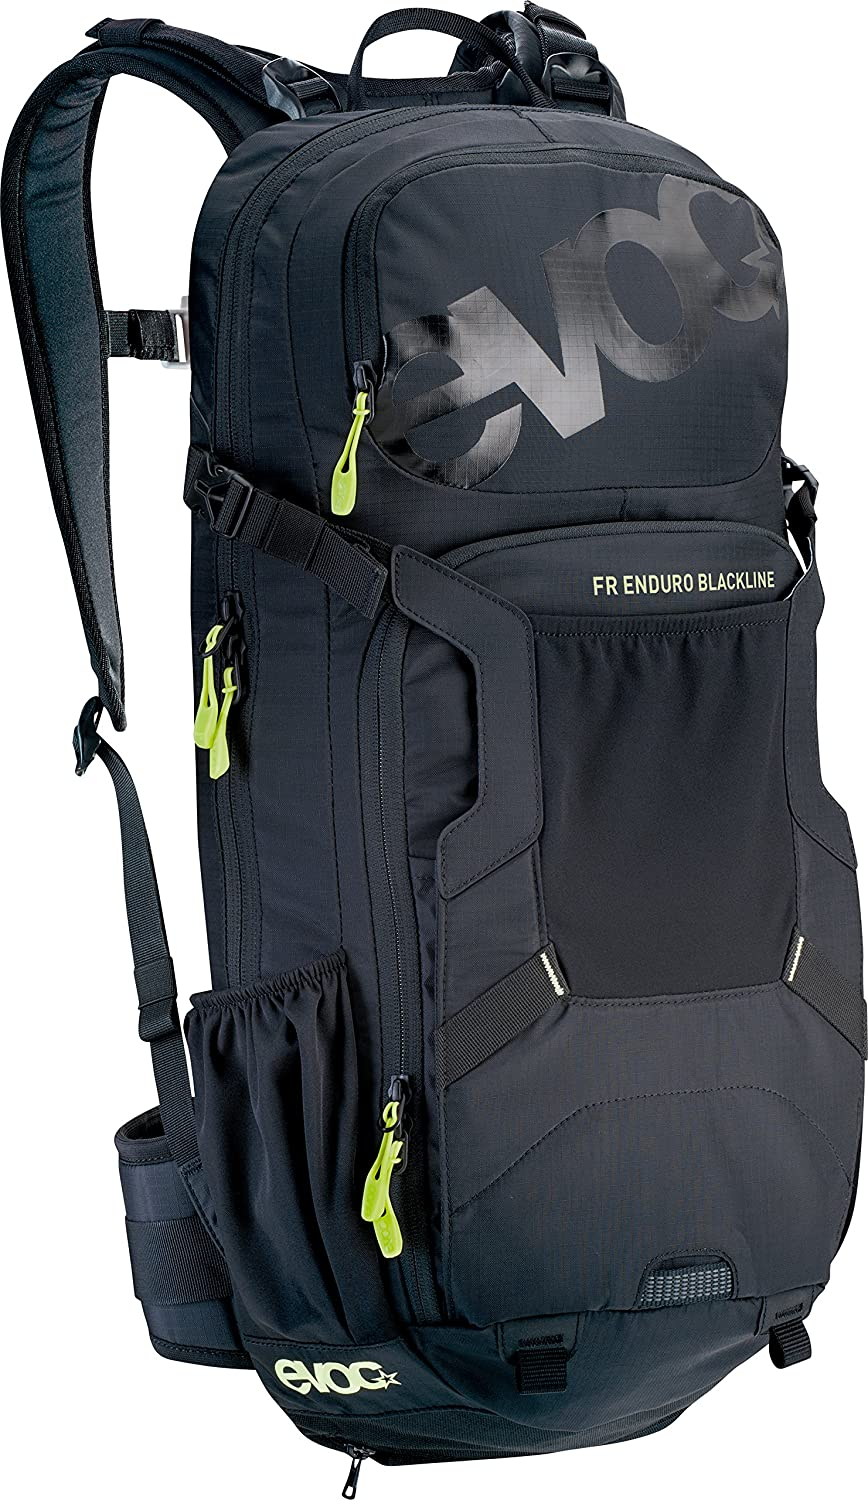 evoc FR Enduro Blackline Protector Hydration Pack Black, M L